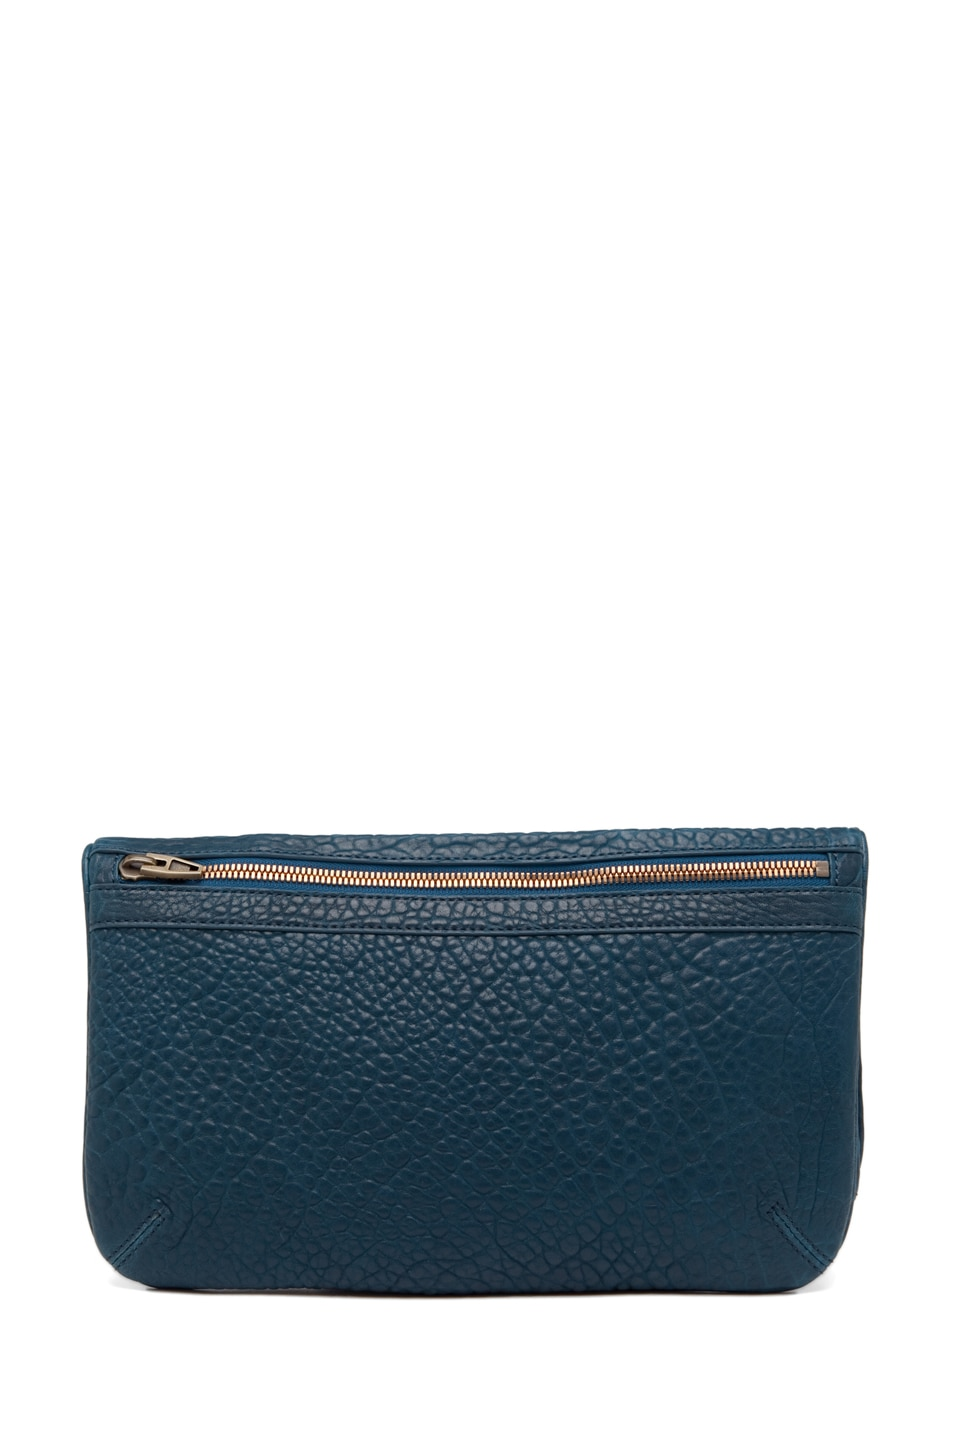 Image 2 of Alexander Wang Dumbo Soft Clutch in Petrol